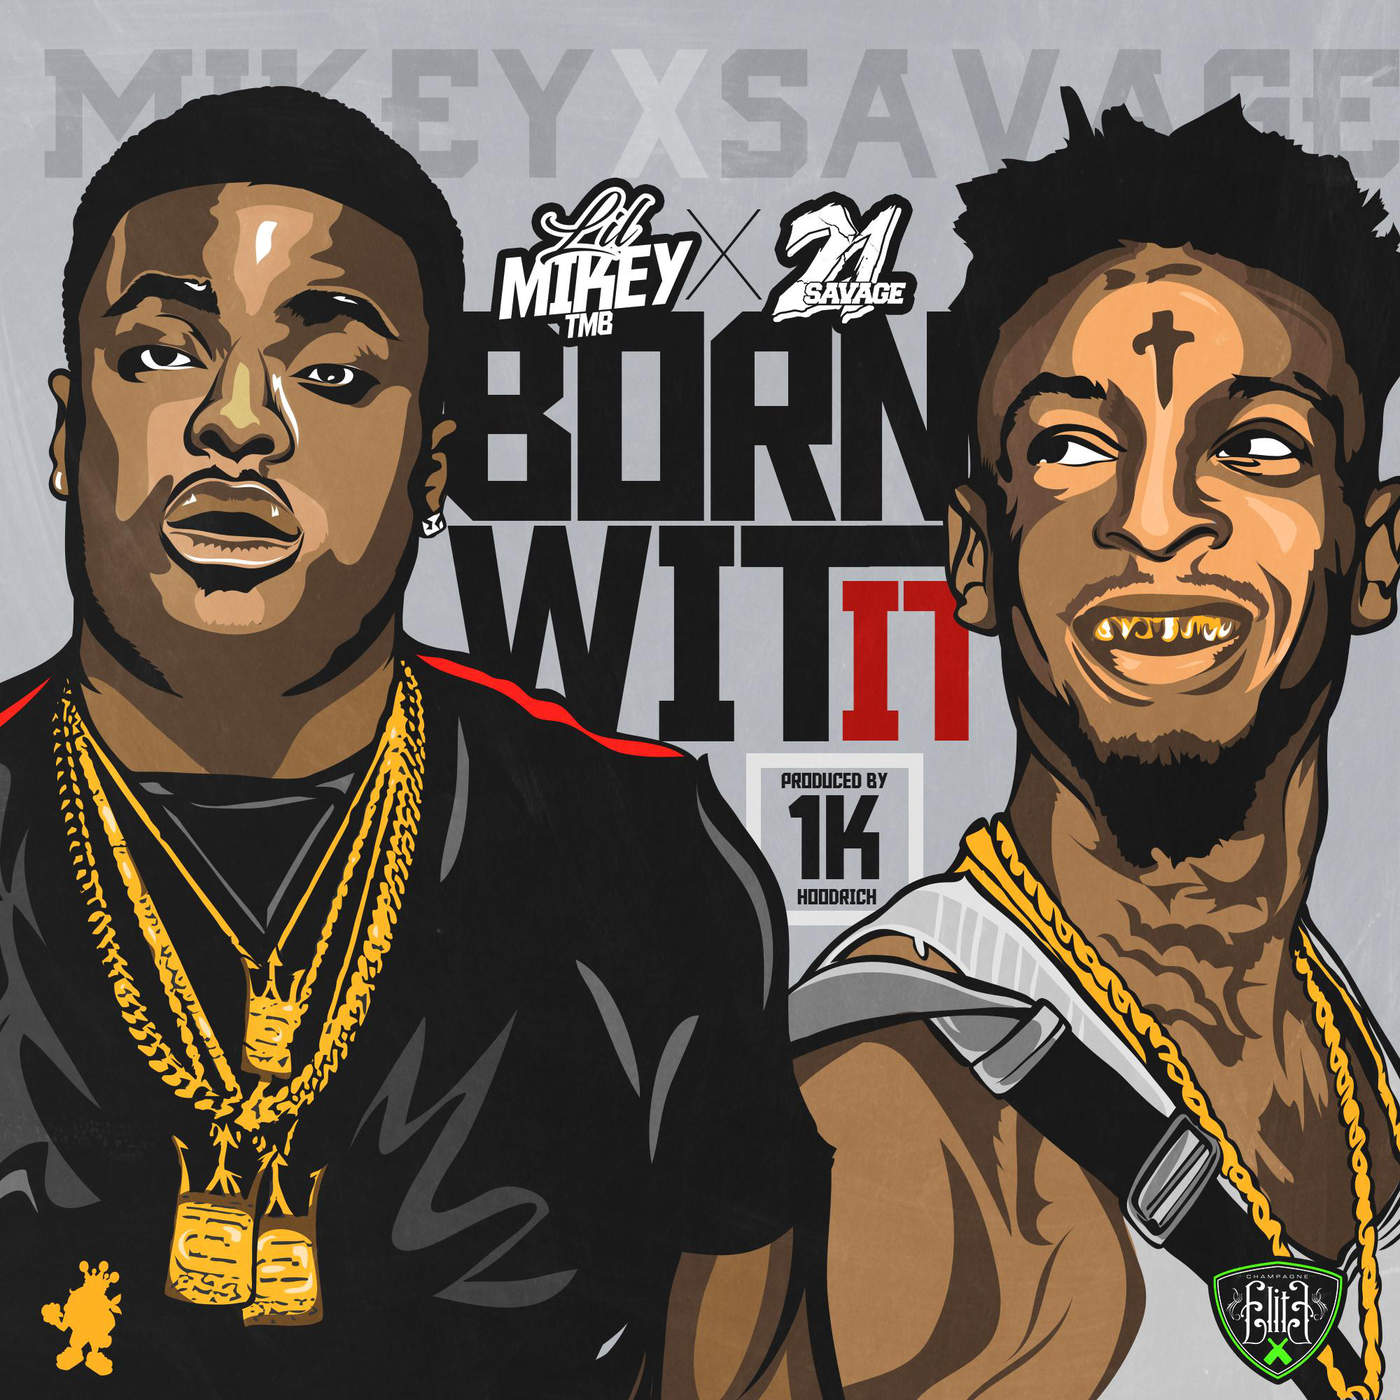 Lil Mikey TMB - Born Wit It (feat. 21 Savage) - Single Cover